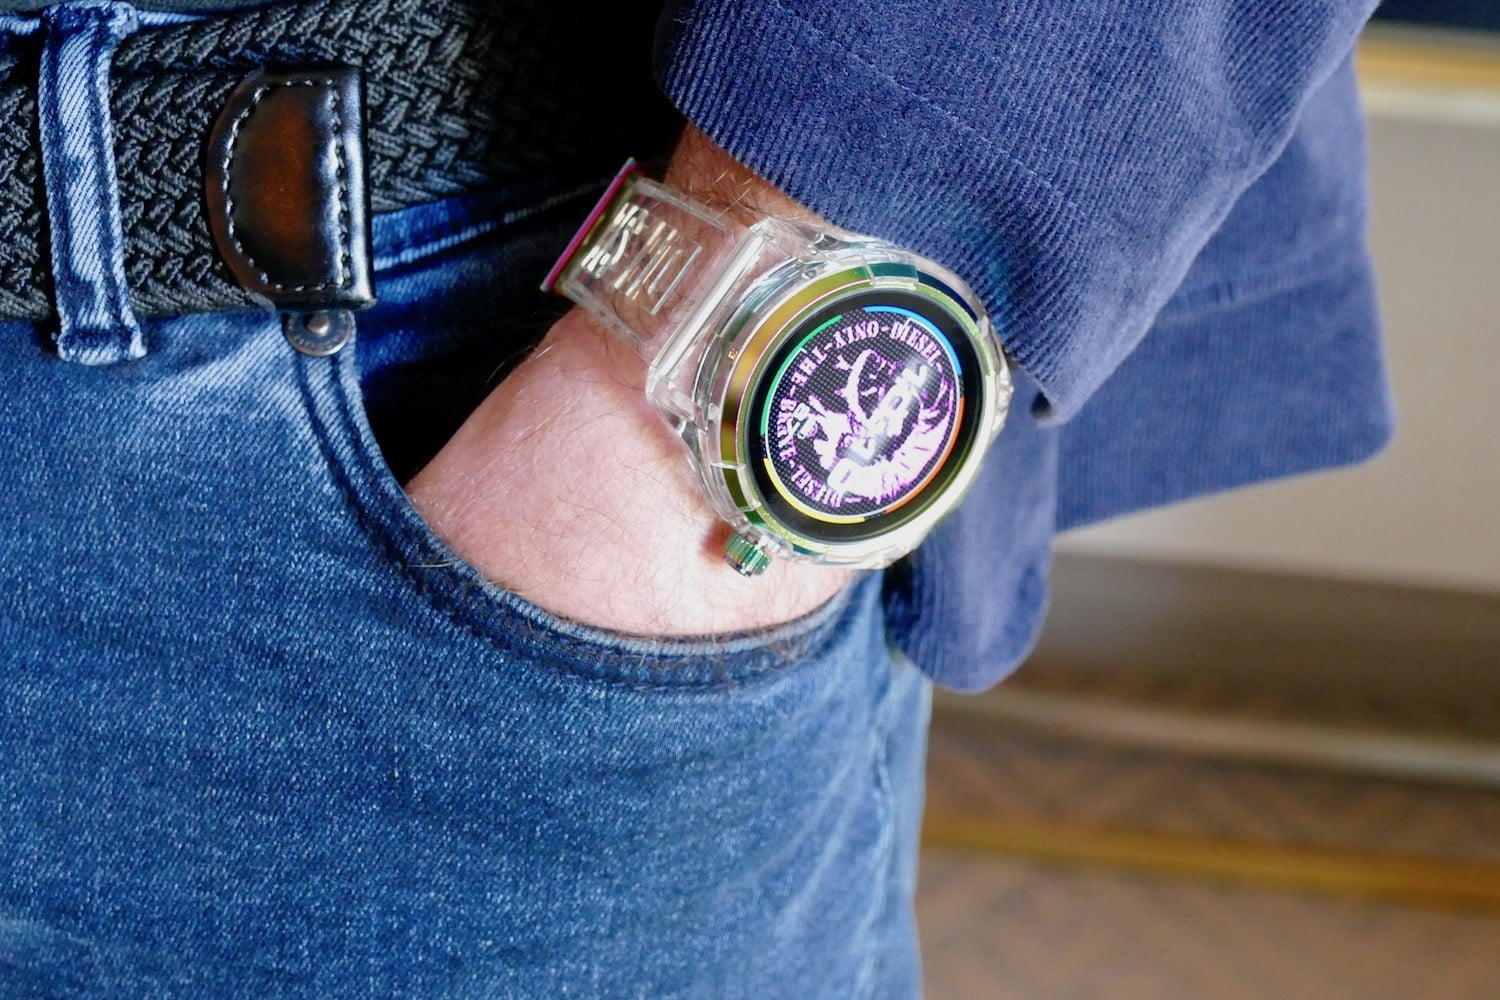 You won't disappear with Diesel's fabulous On Fadelite smartwatch on your wrist